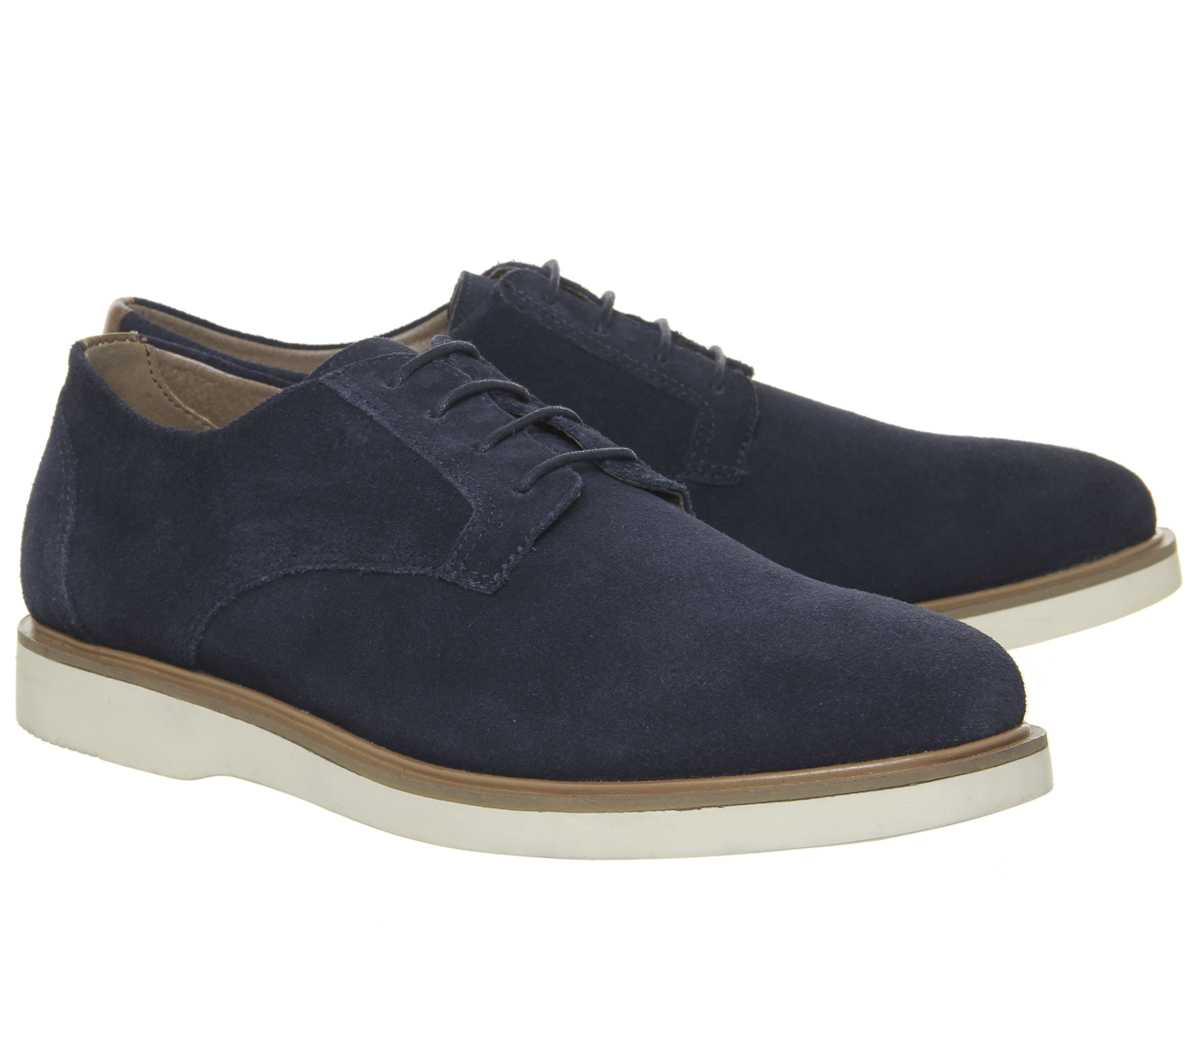 Mens-Office-Item-Derby-Shoes-Navy-Suede-Casual-Shoes thumbnail 13